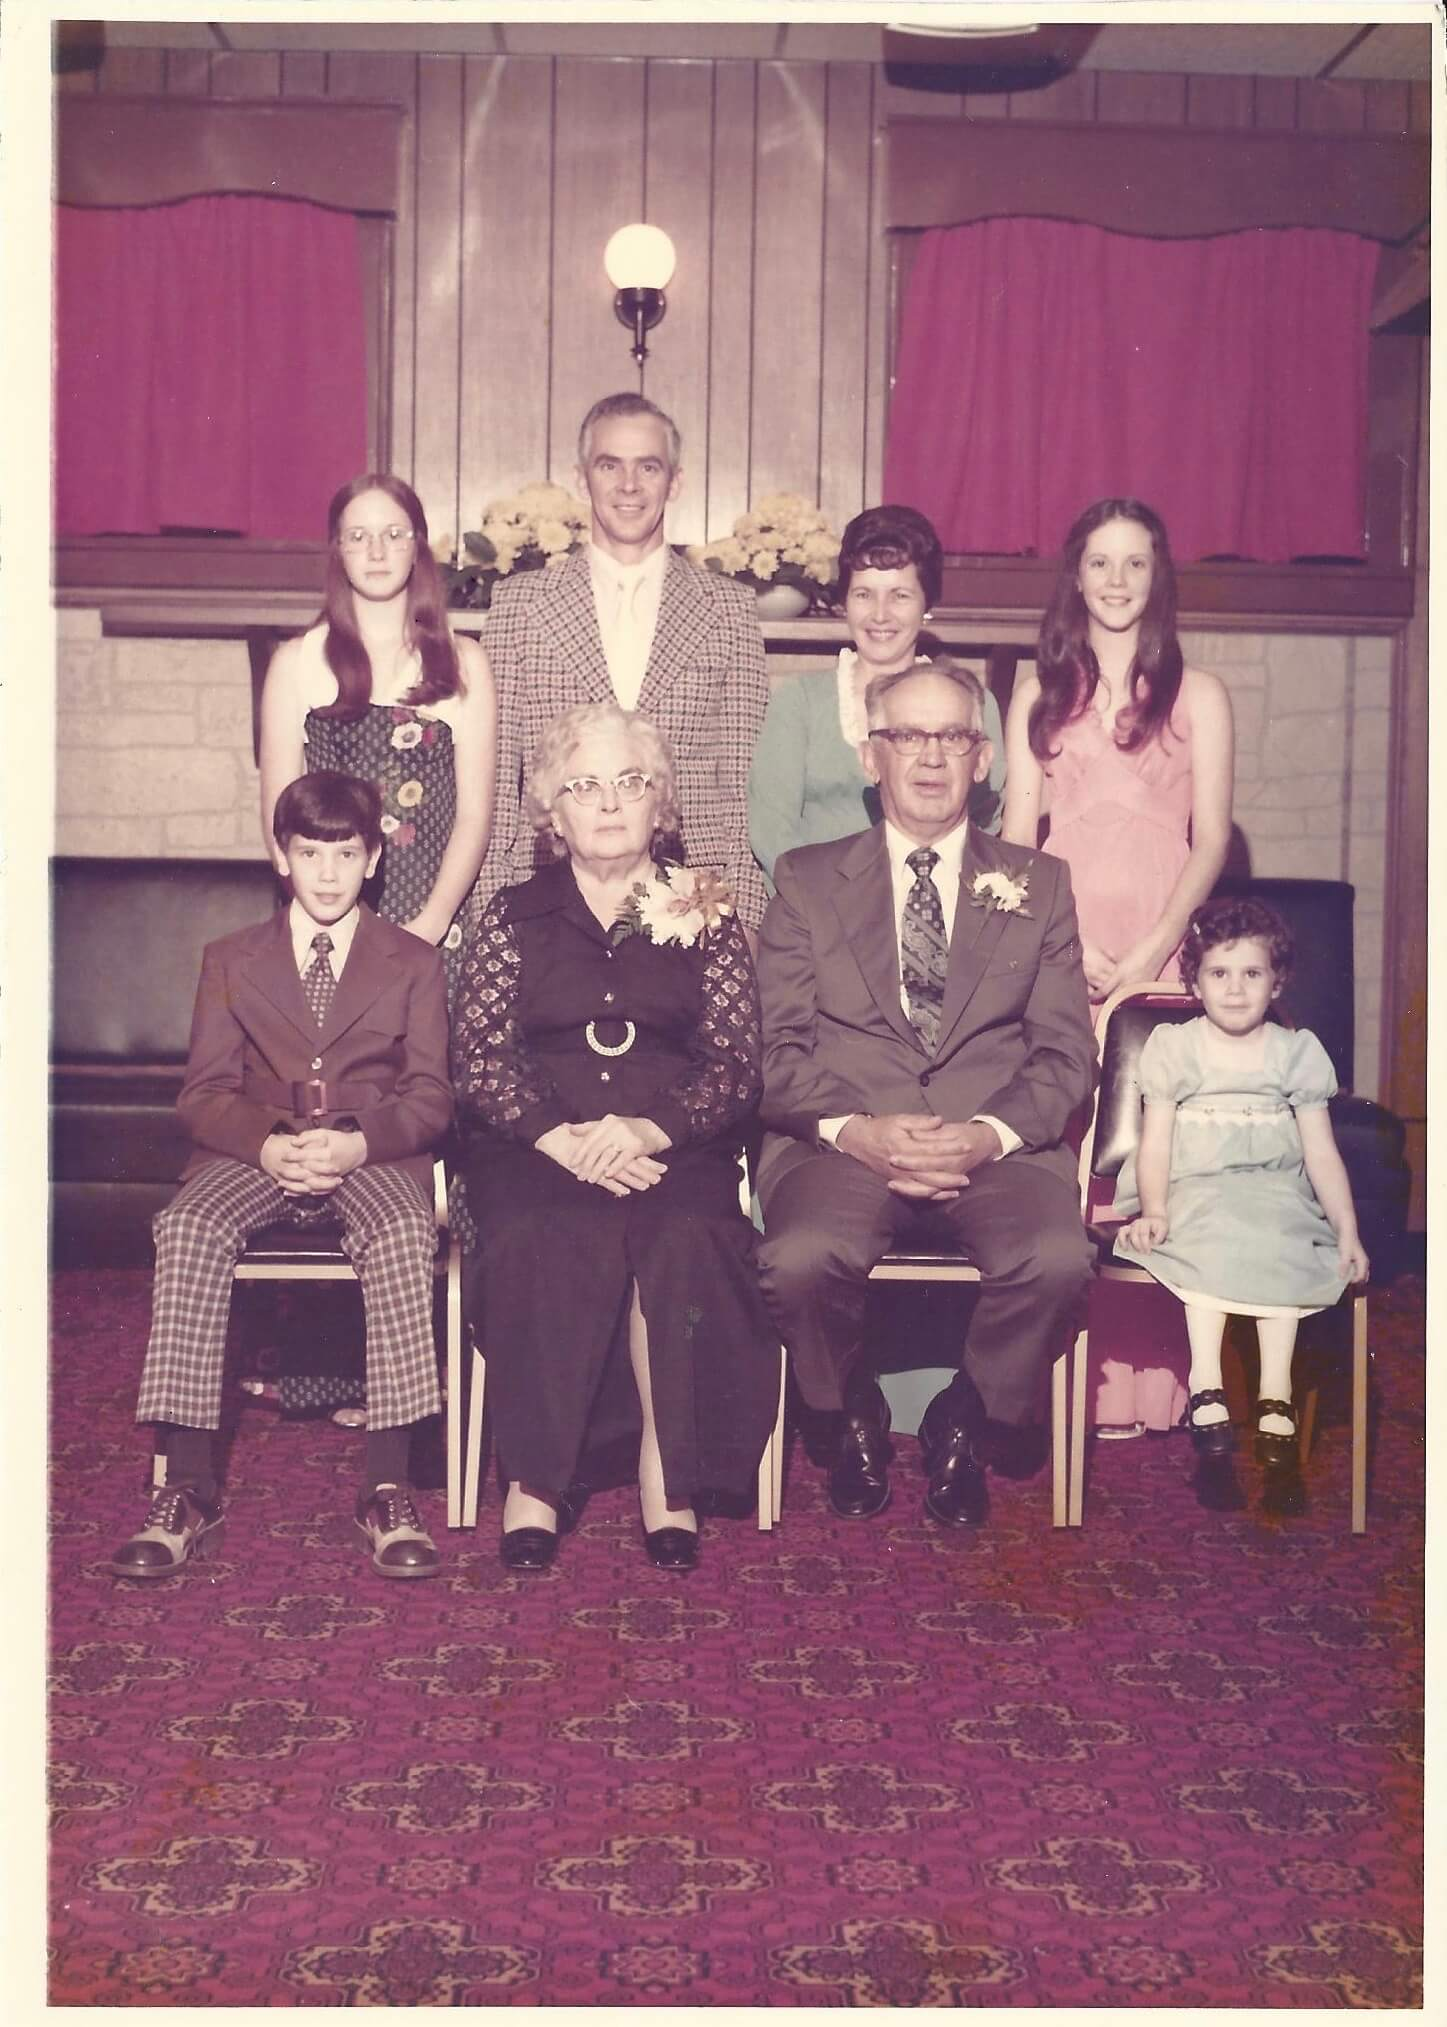 a 1974 American family